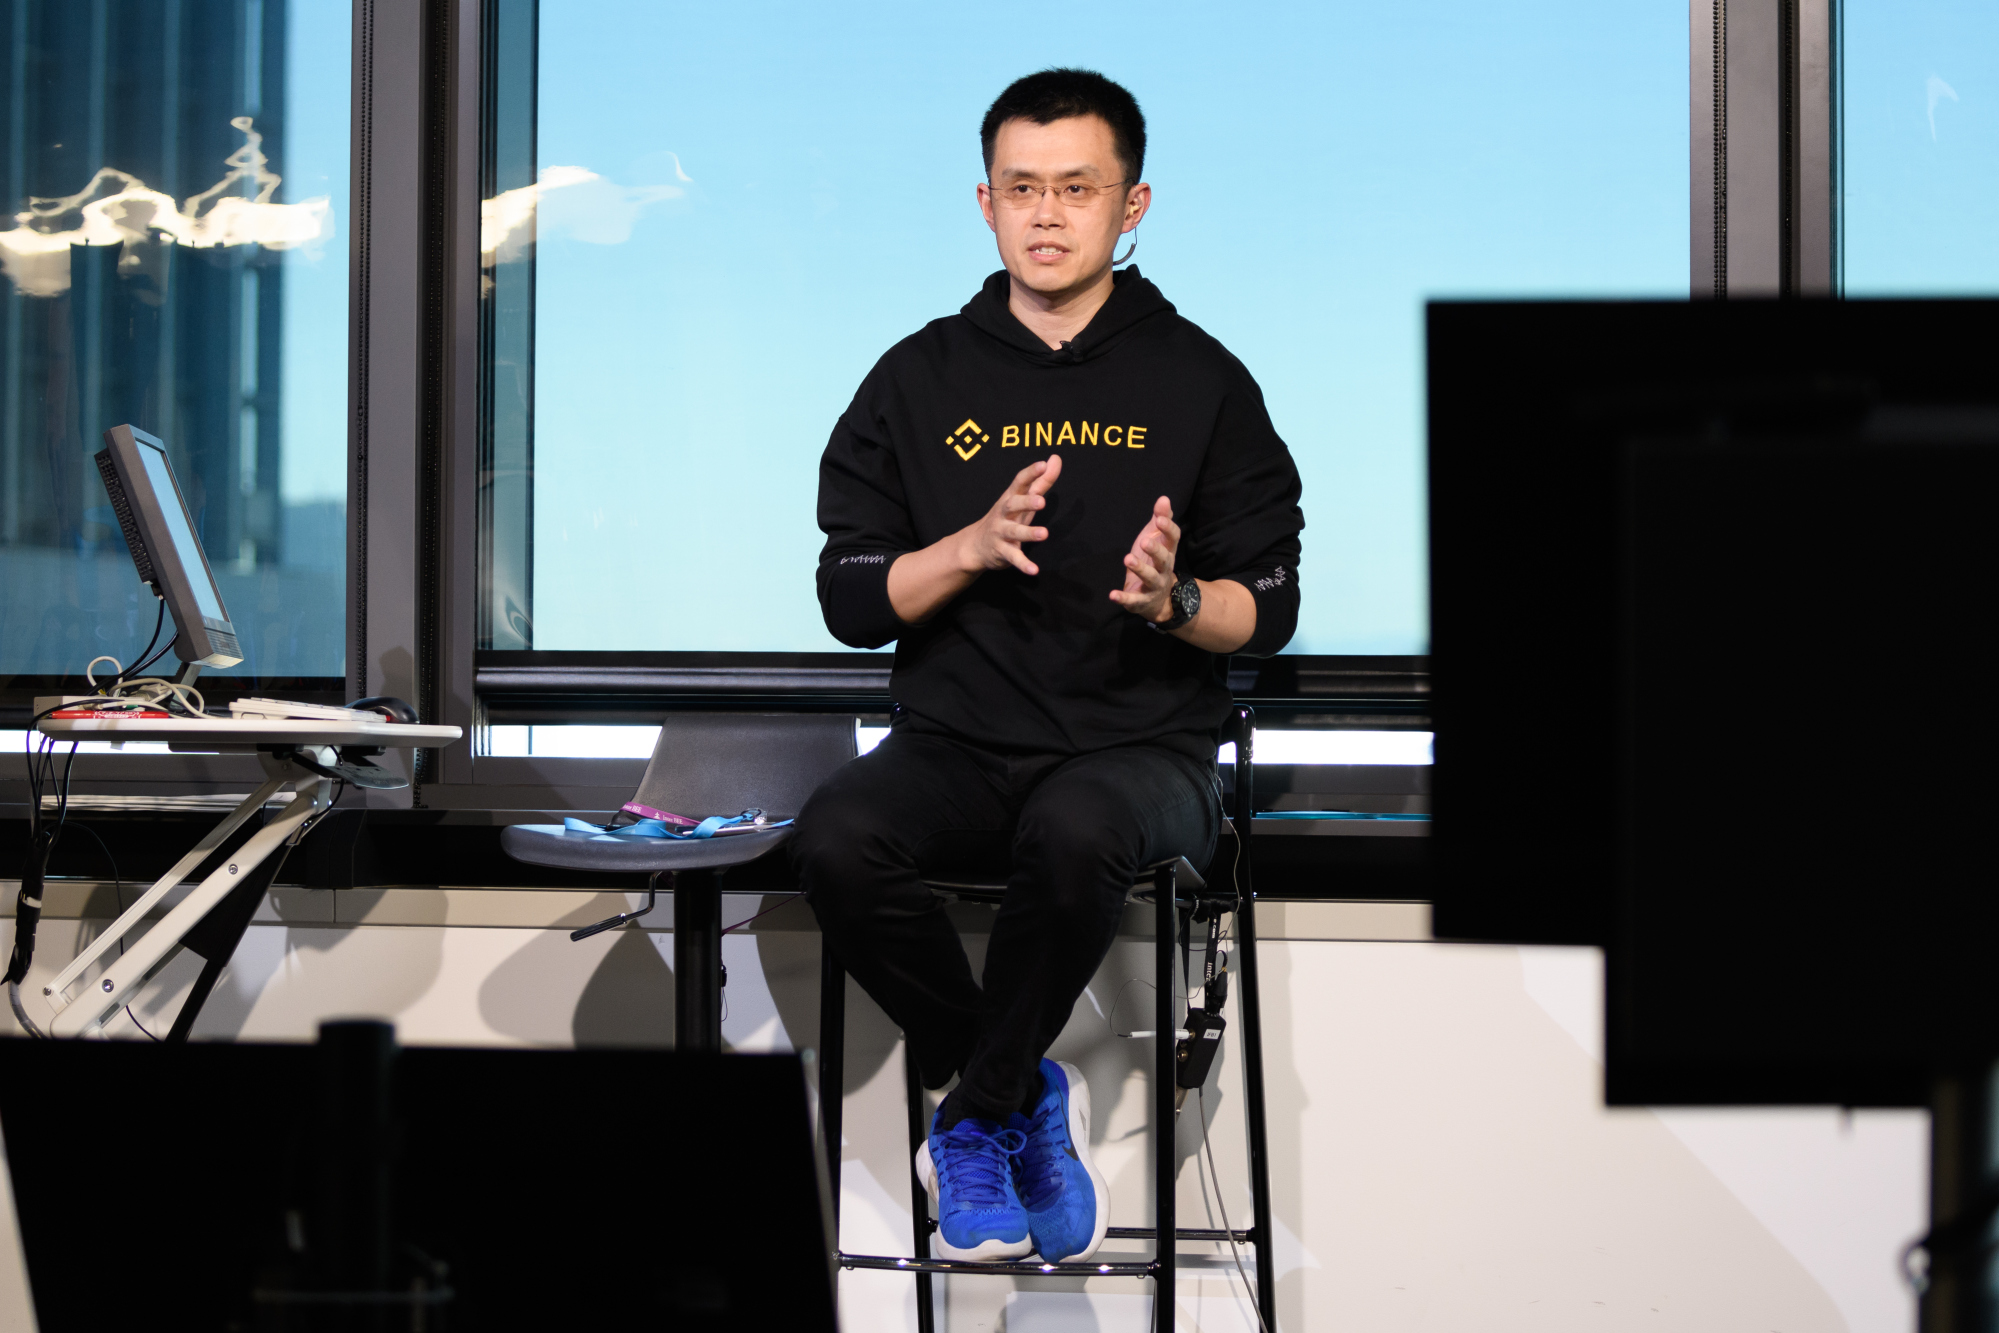 Zhao Changpeng, chief executive officer of Binance, speaks during a Bloomberg television interview in Tokyo, Japan, on Thursday, Jan. 11, 2018. Photographer: Akio Kon/Bloomberg